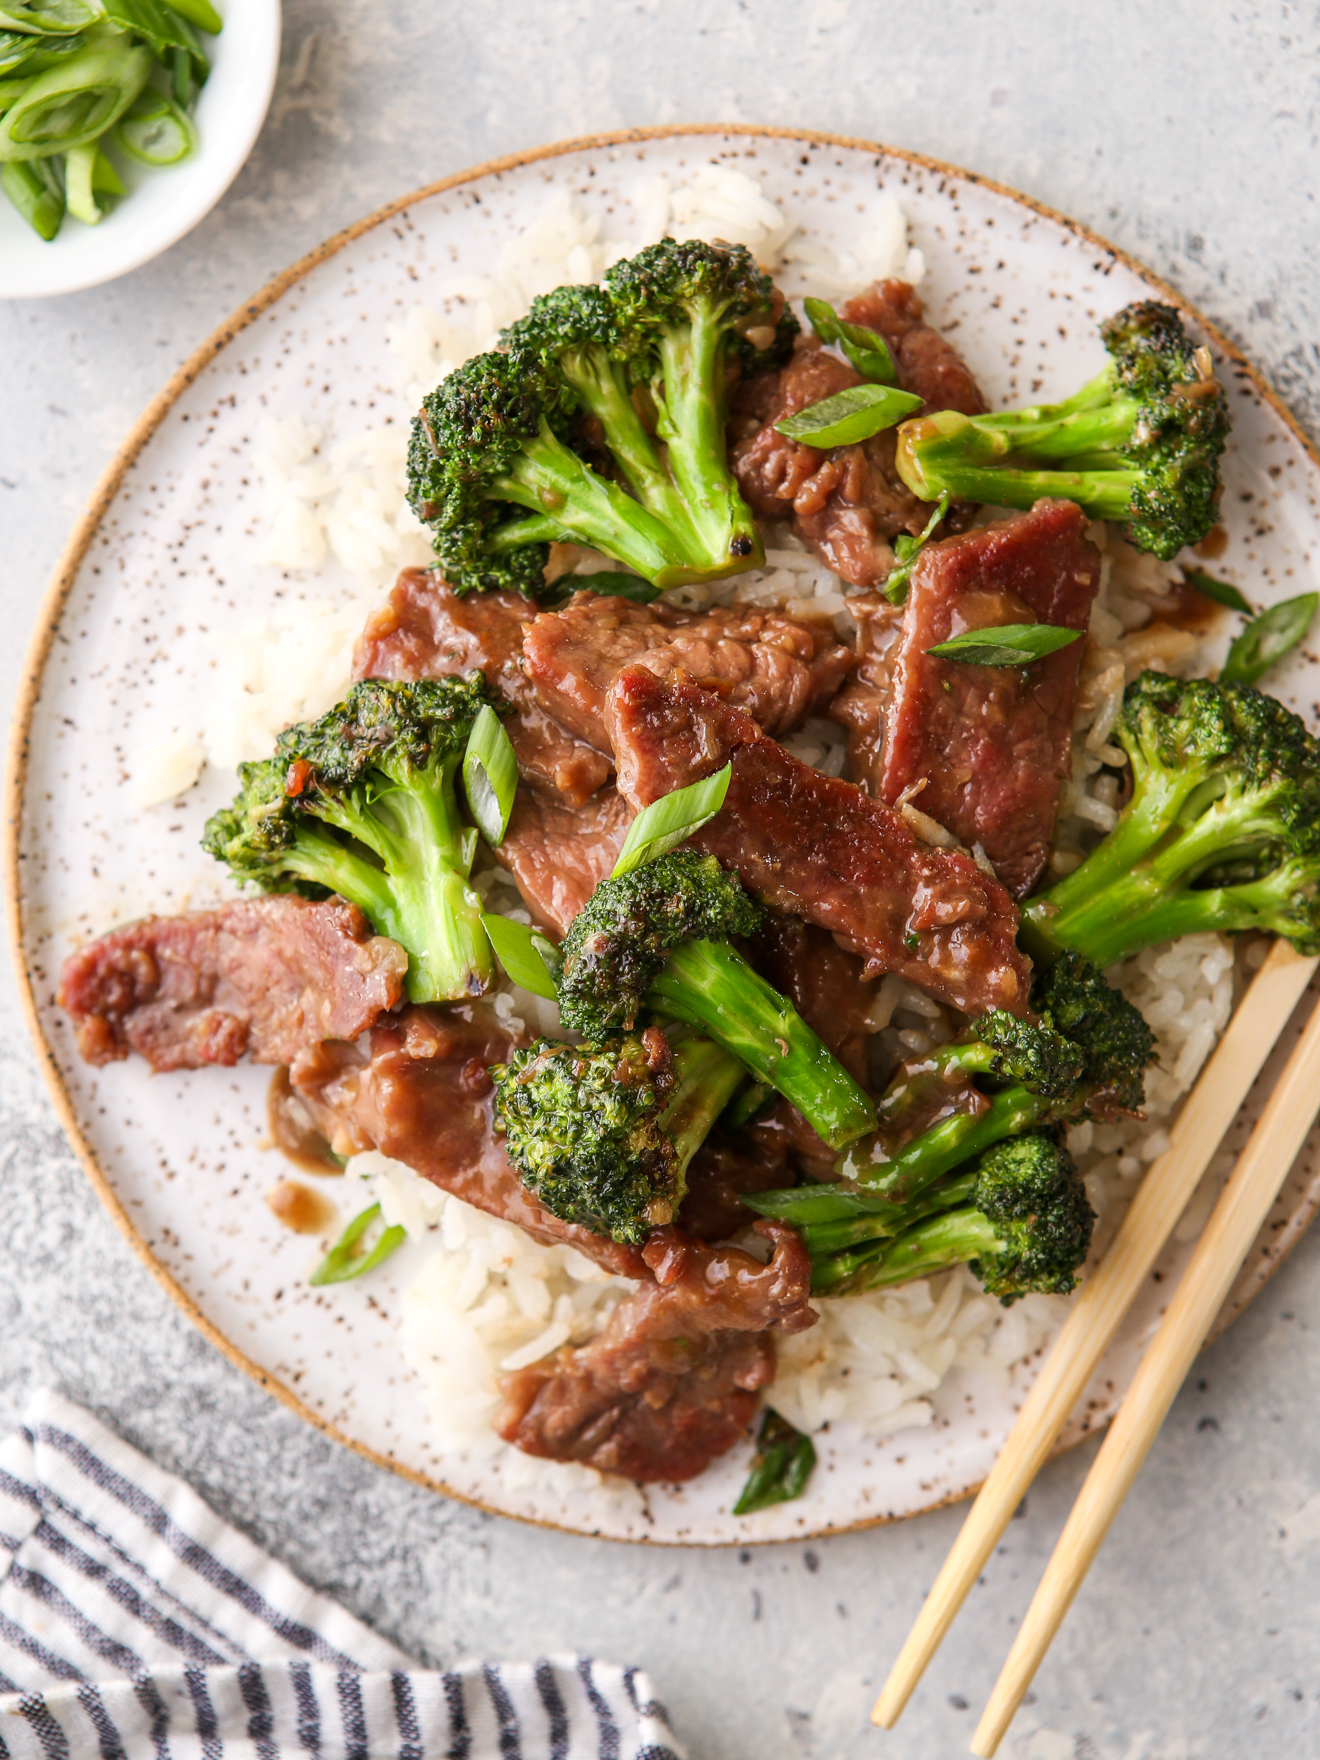 Beef And Broccoli Stir Fry Completely Delicious